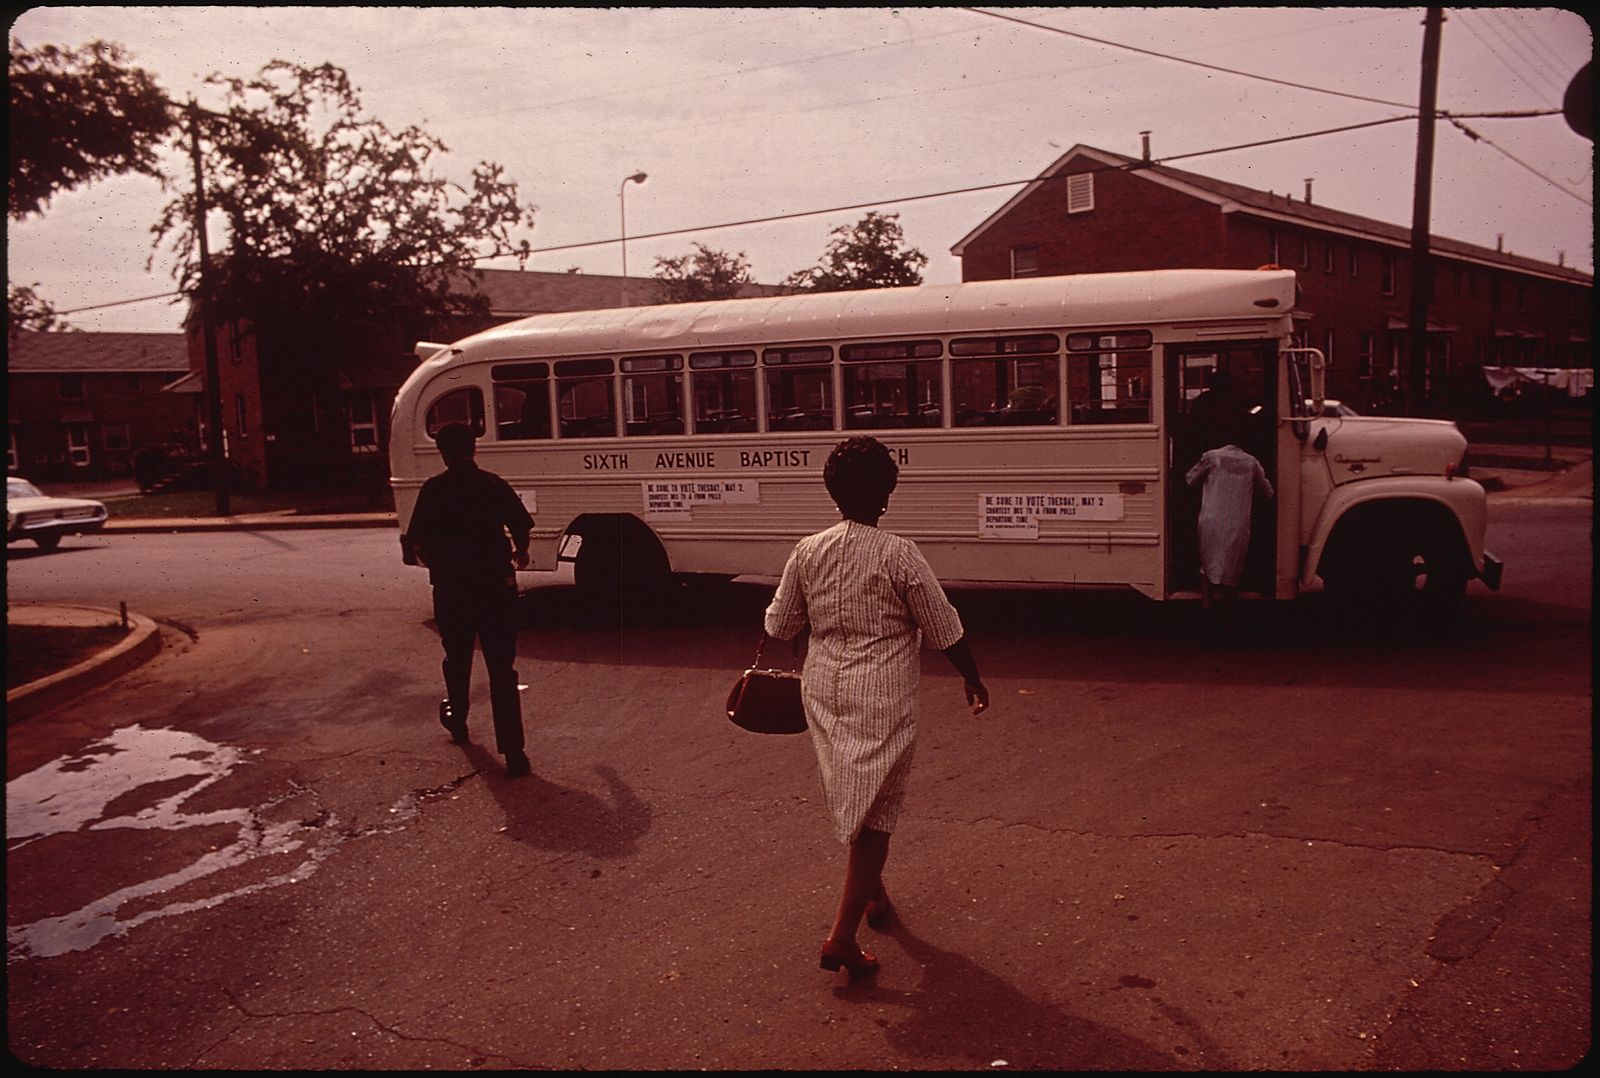 SIXTH_AVENUE_BAPTIST_CHURCH_PROVIDES_BUS_TO_GET_VOTERS_OF_BLACK_COMMUNITY_TO_THE_POLLS_ON_PRIMARY_ELECTION_DAY_-_NARA_-_545385.jpg